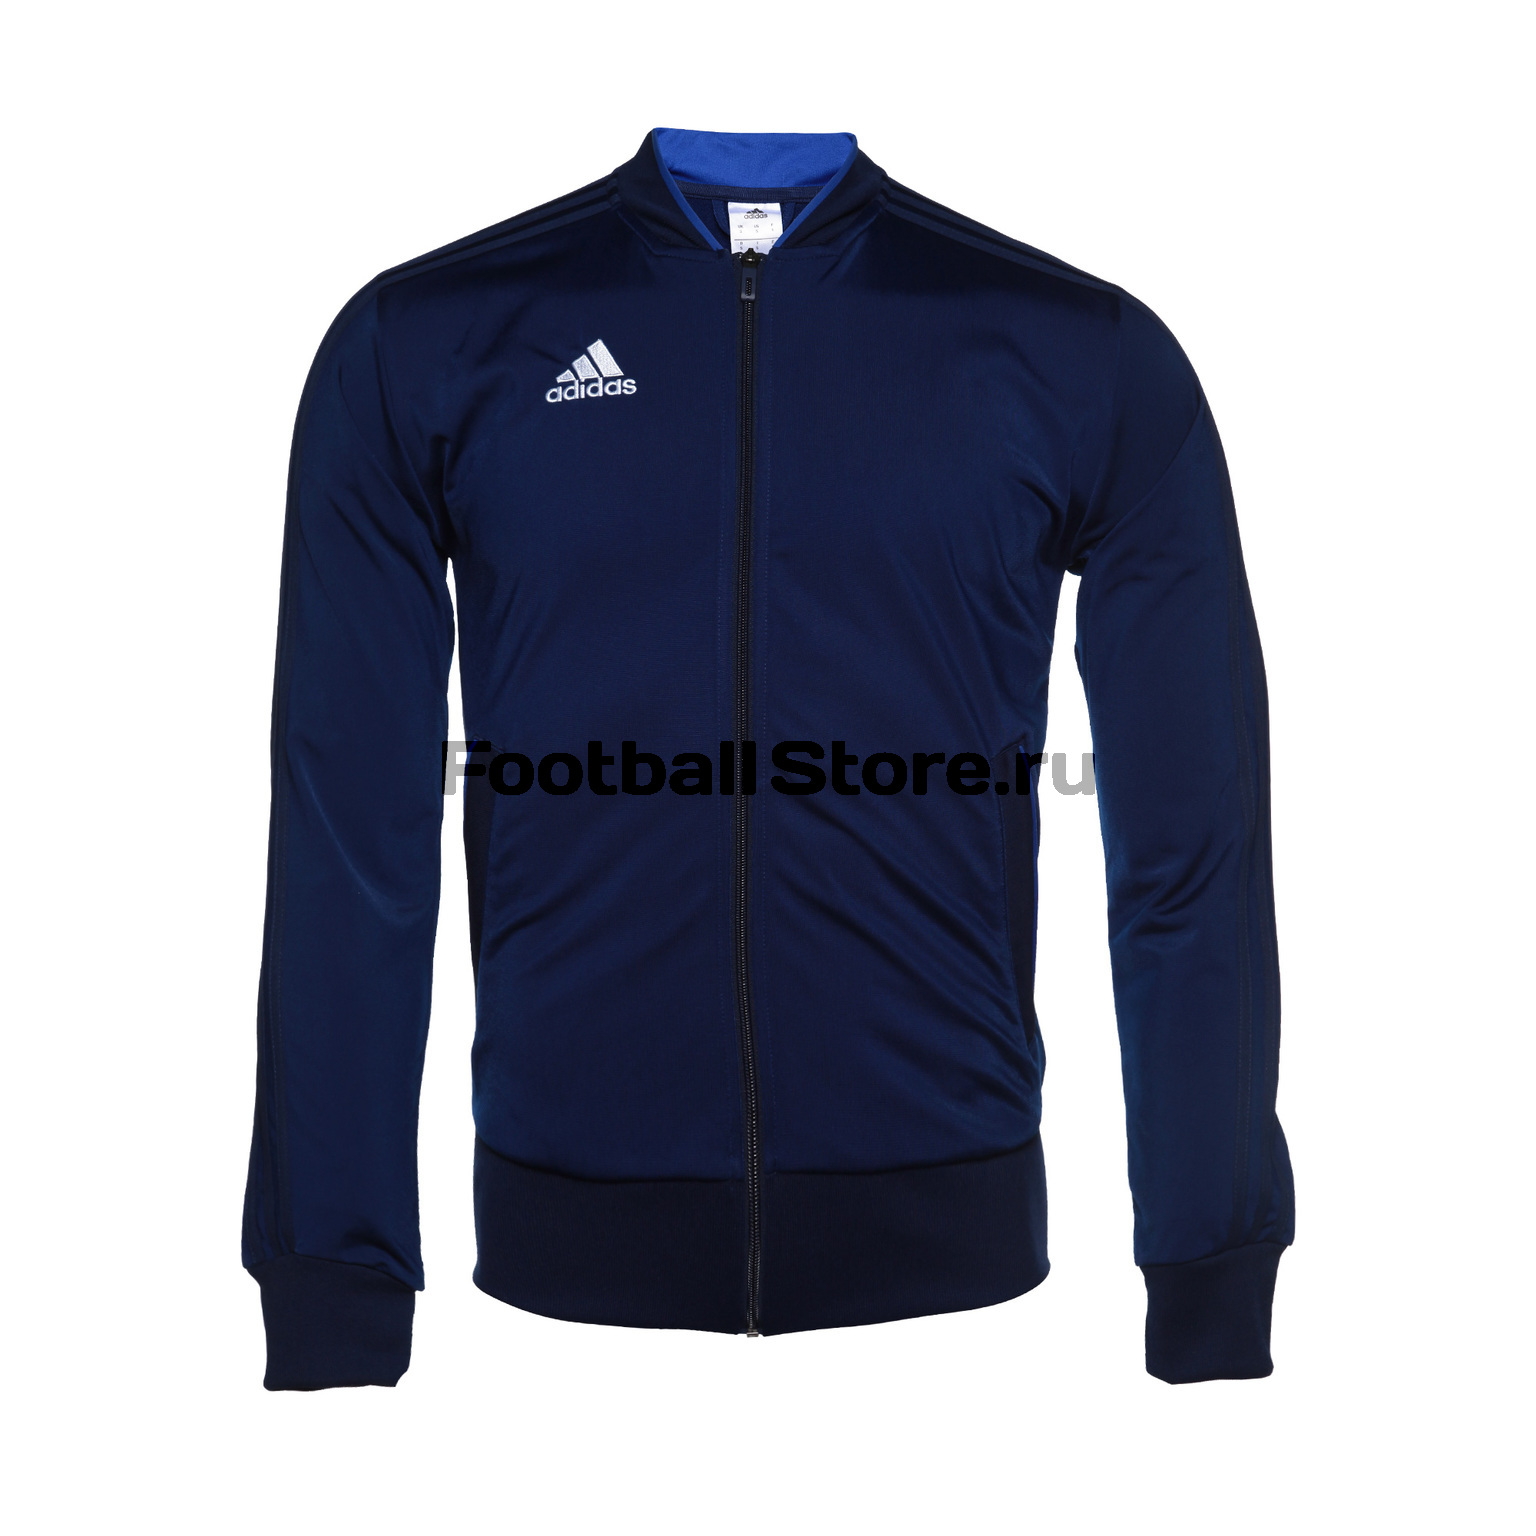 Олимпийка Adidas Con18 Pes Jkt CF4319 олимпийка мужская adidas tan club h jkt цвет черный dw9360 размер xs 40 42